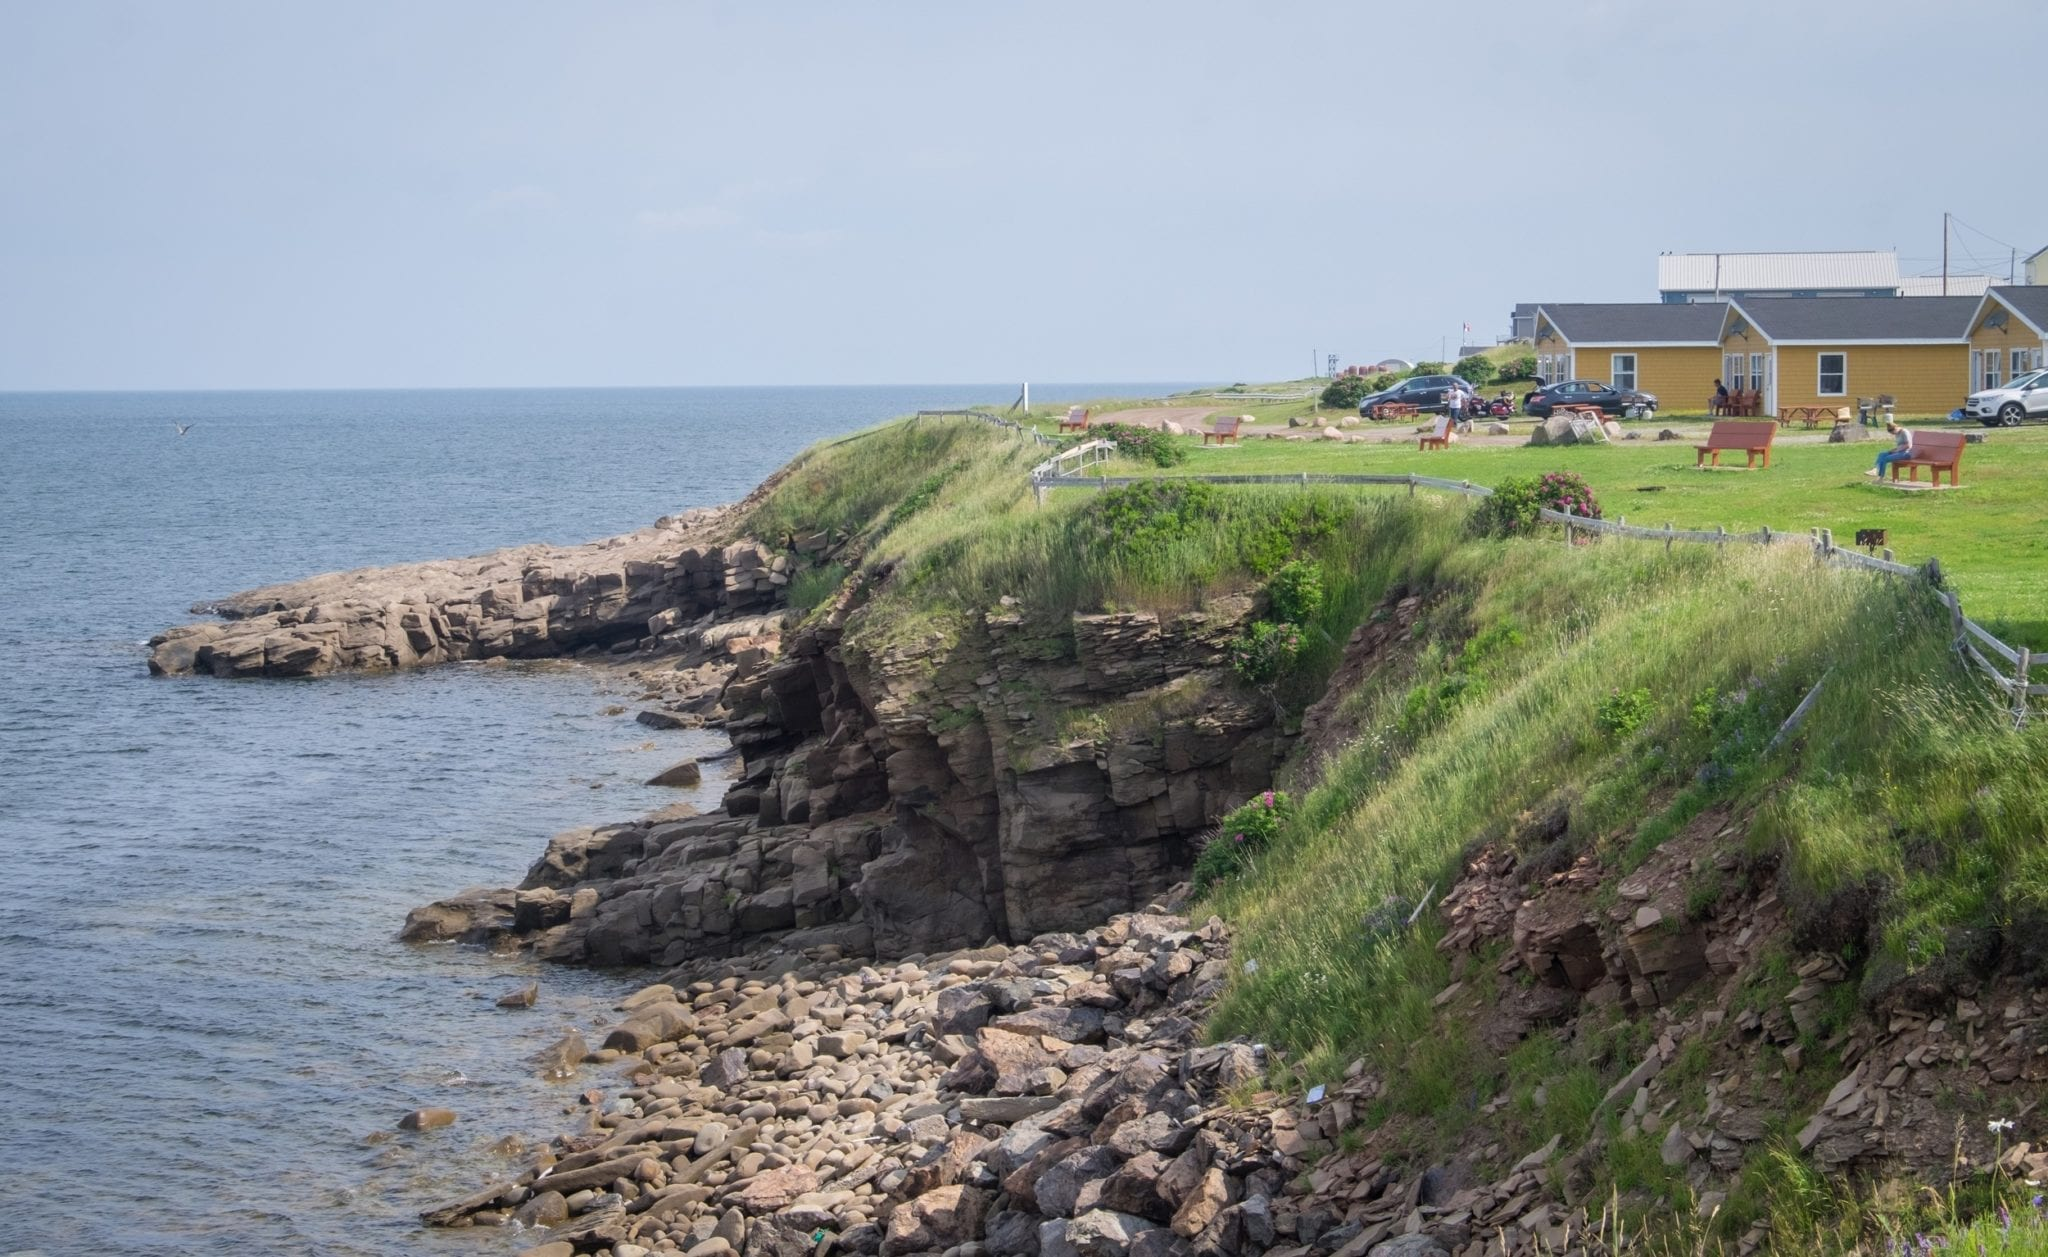 A rocky coastline falls into the sea. On the top is grass, two yellow cottages, benches, and picnic tables.